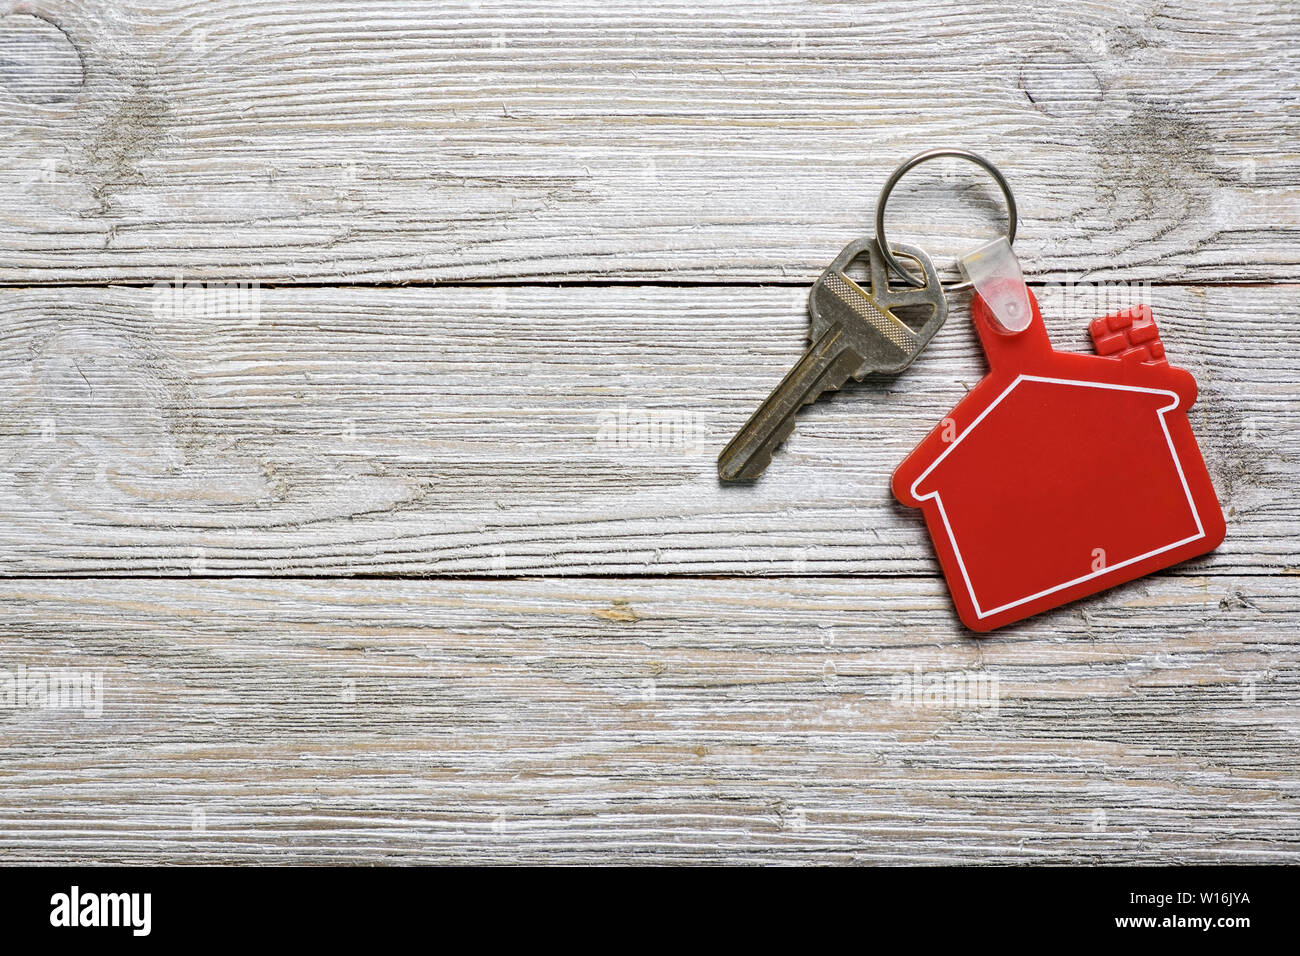 House key with red house shape keychain for real estate concept - Stock Image